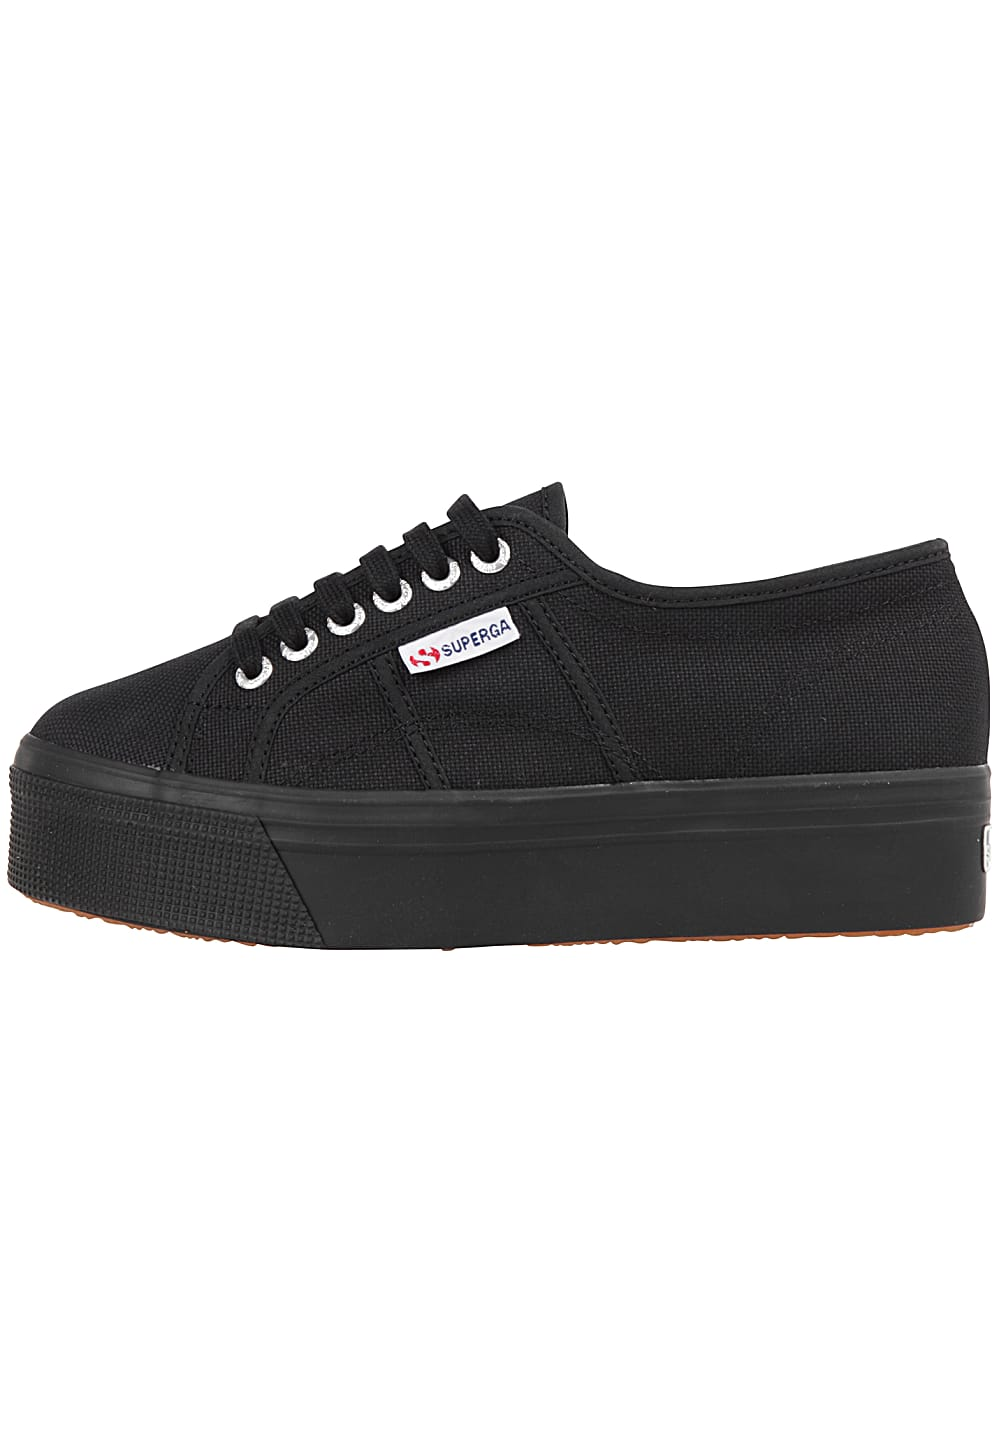 Schwarz Superga Damen Für Down Sneaker Acotw And Linea Up 2790 tshQdCr